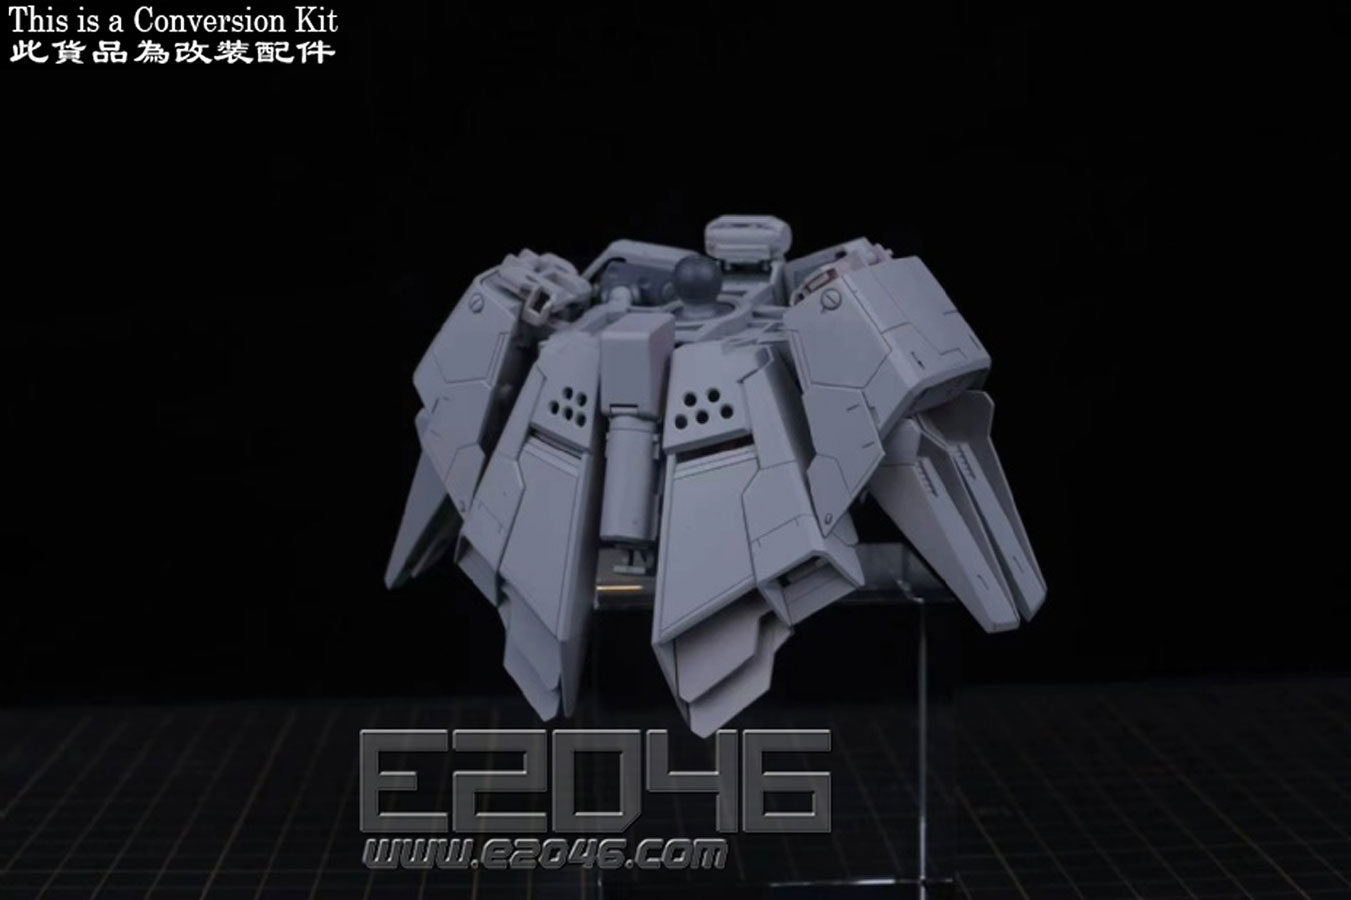 MSN-03 JAGD DOGA Conversion Kit